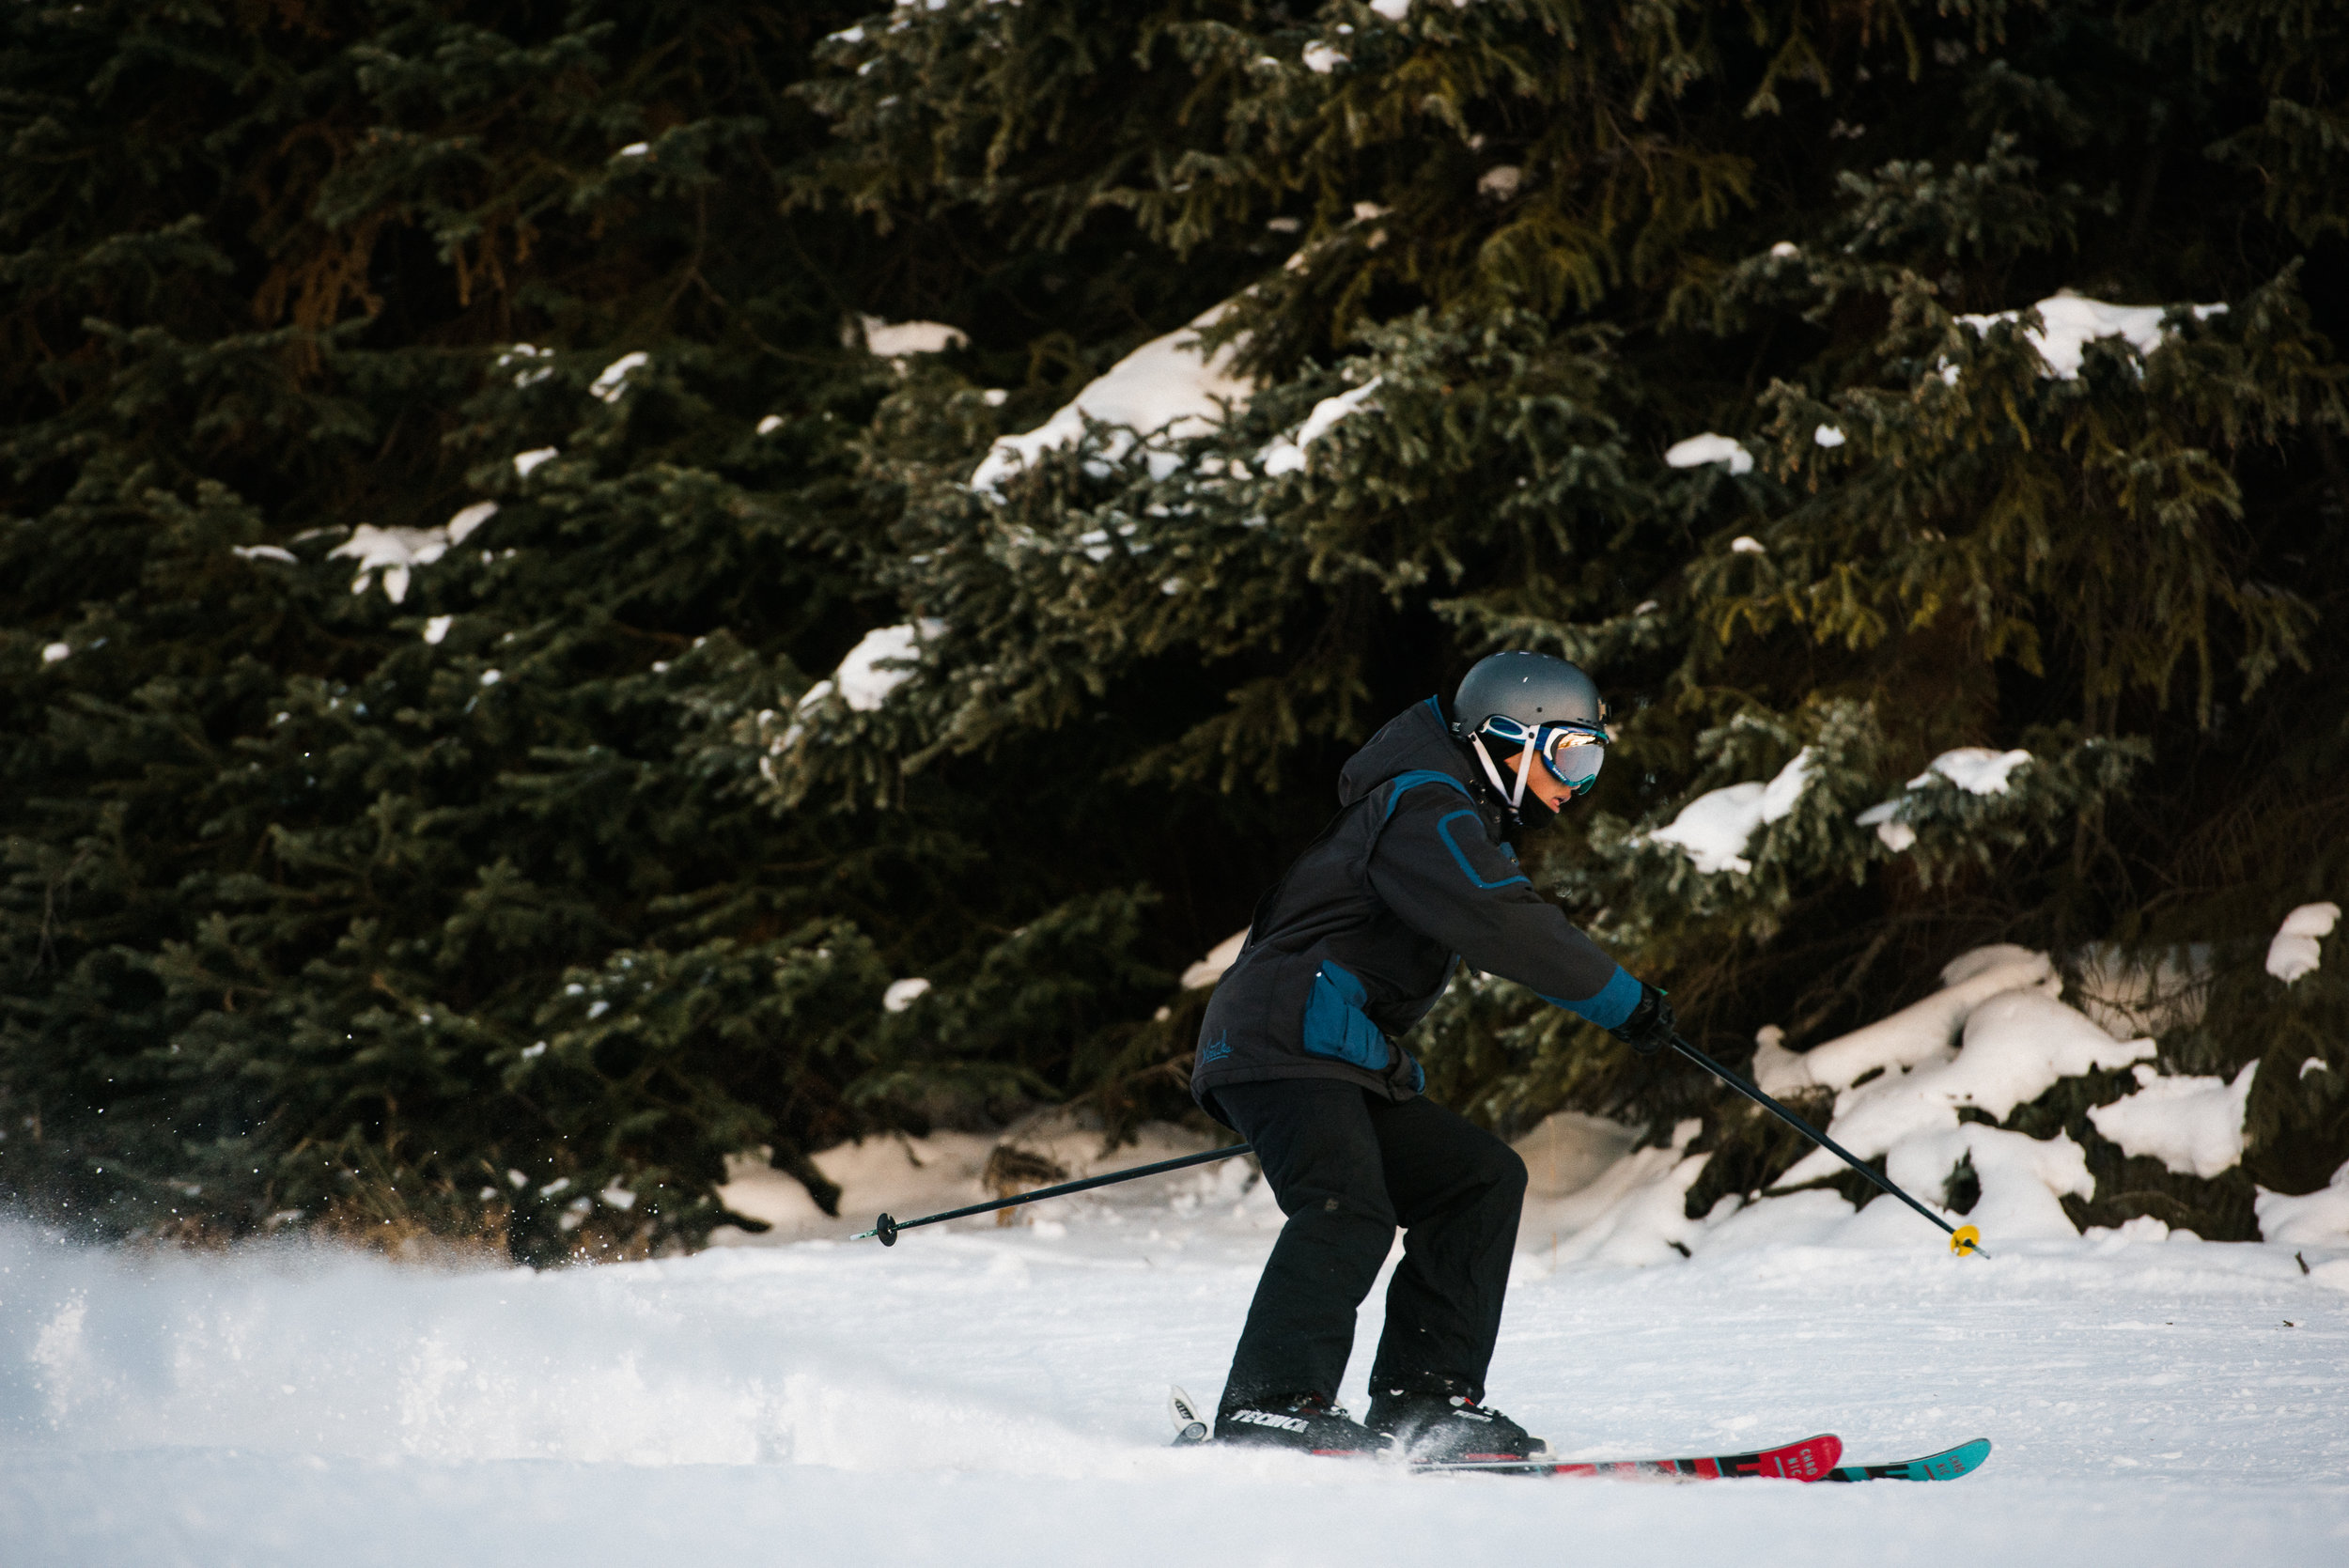 TaraShupe_Outdoor_Photographer_Loweprobags_Colorado_Copper_Mountains_Ski_45.jpg